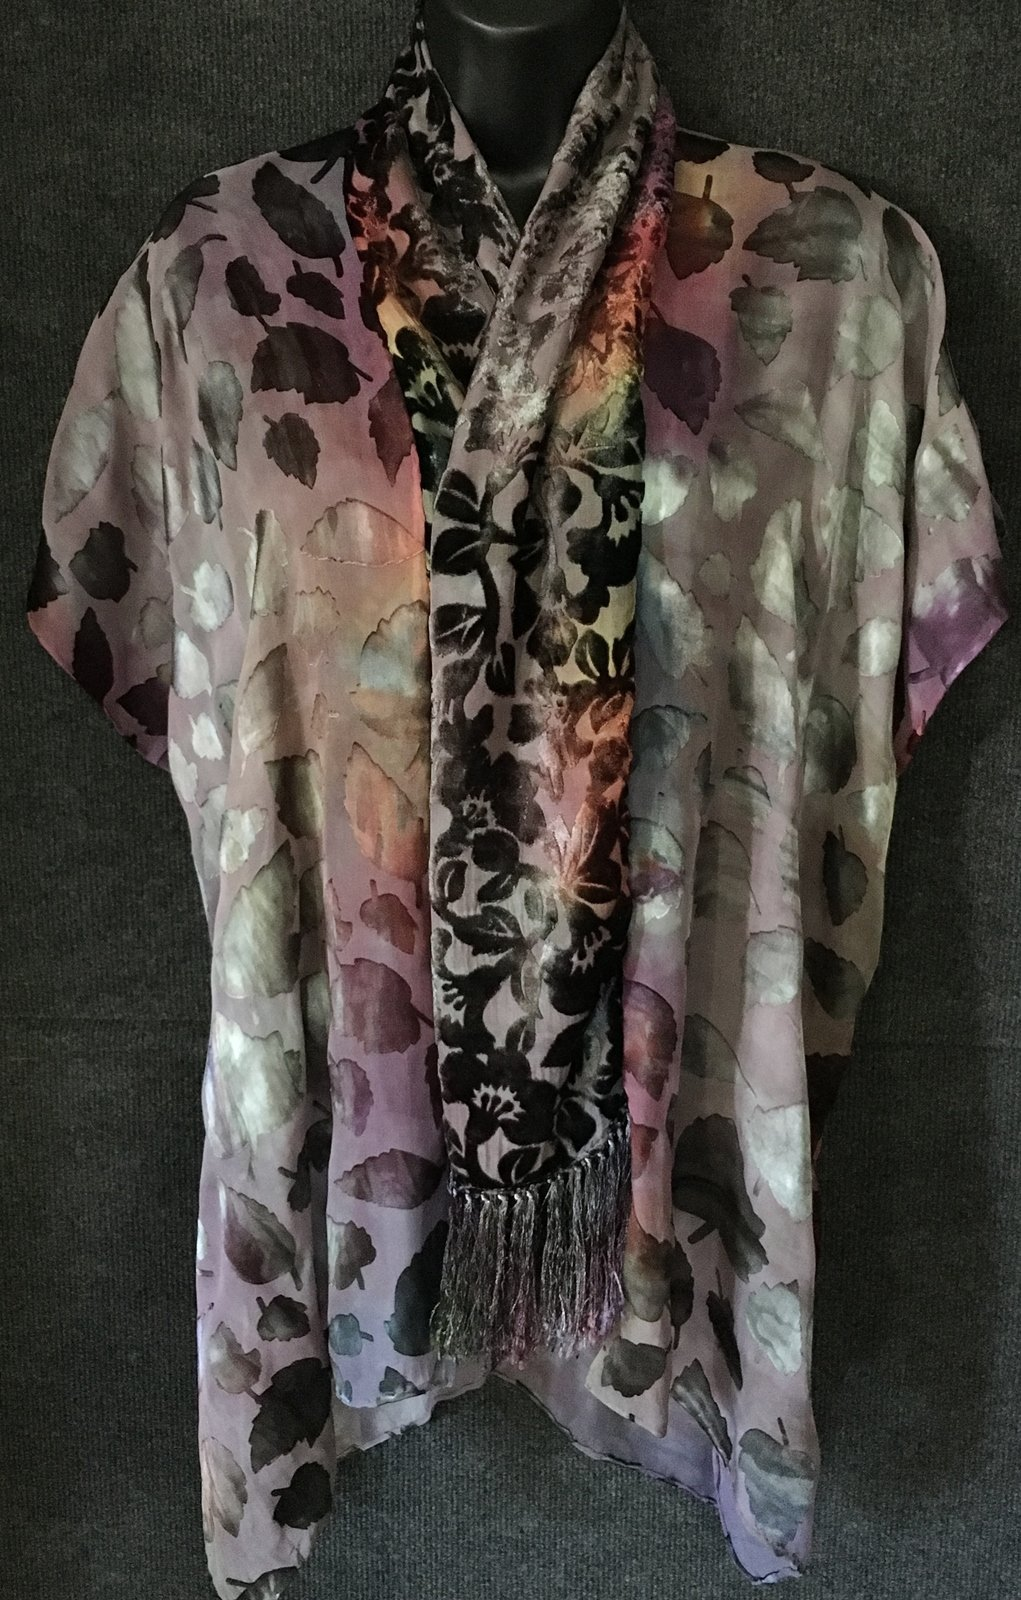 Hand Dyed Silk Scarf Jacket in Silvery Grey Color Mix with Cut Velvet Collar